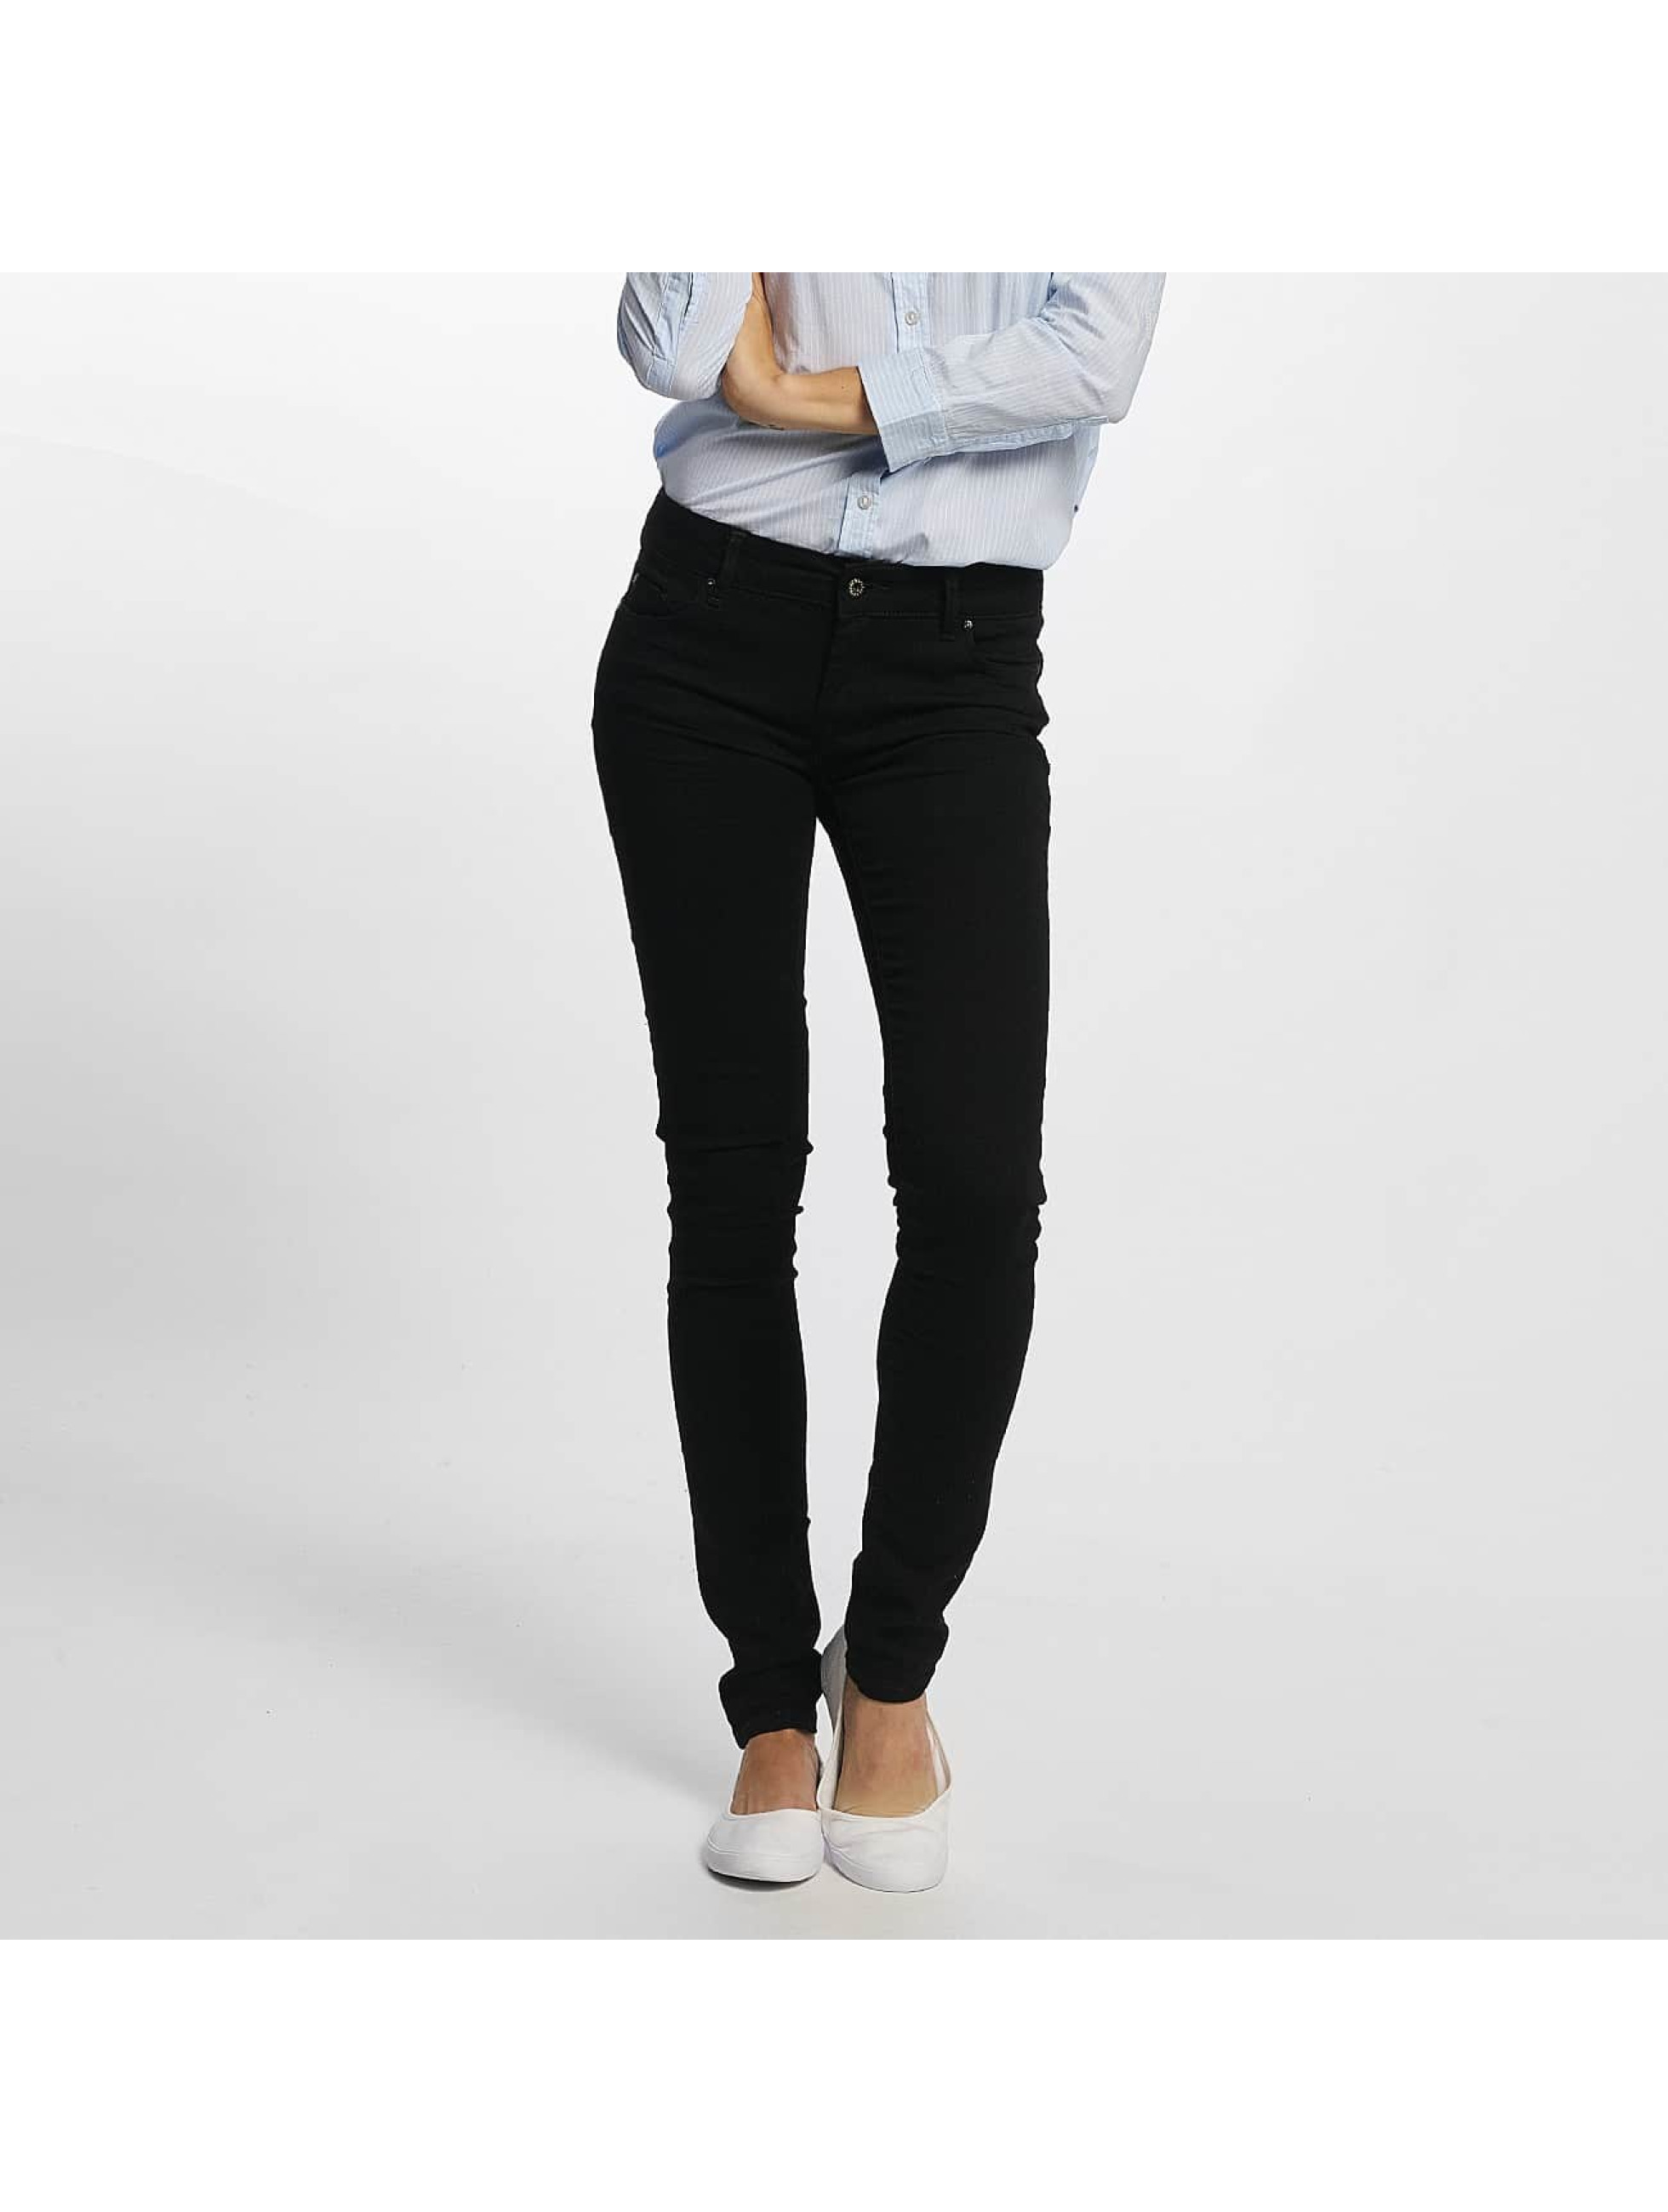 Kaporal Frauen Straight Fit Jeans Lock in schwarz